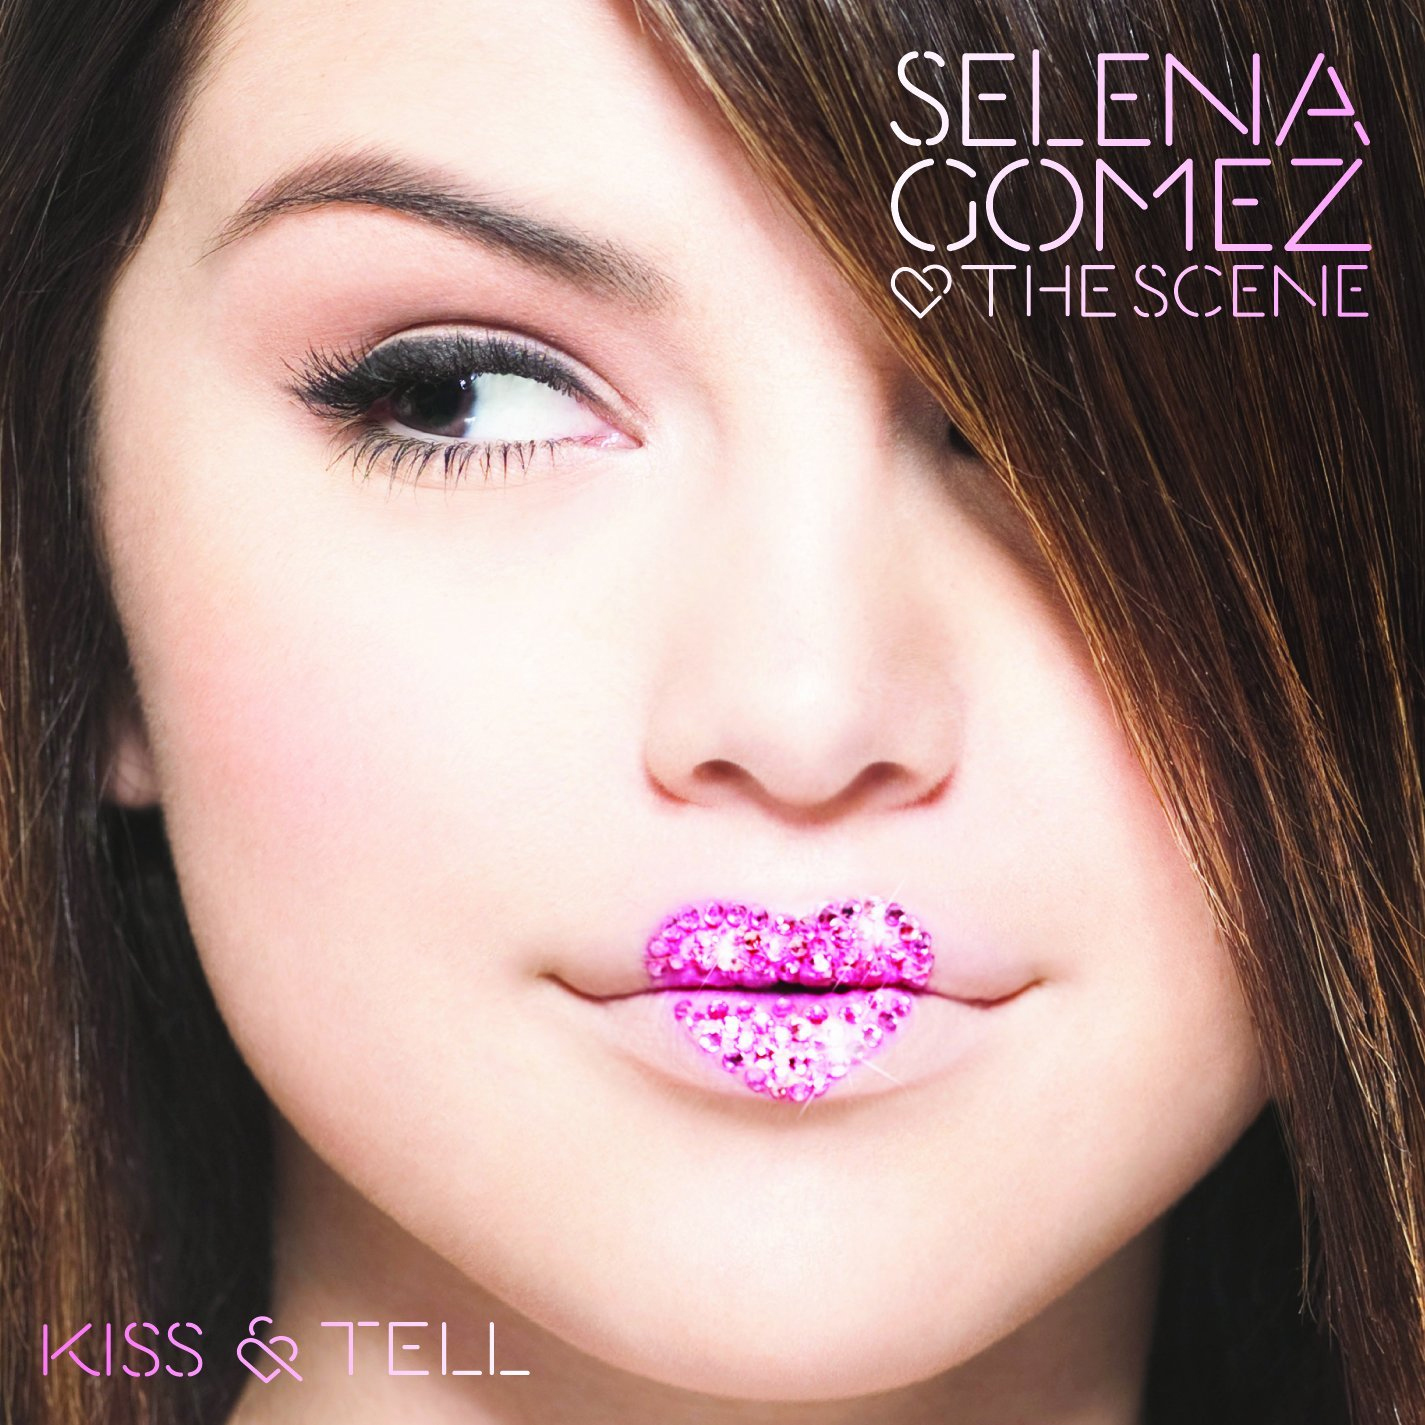 Selena gomez kiss and tell album cover